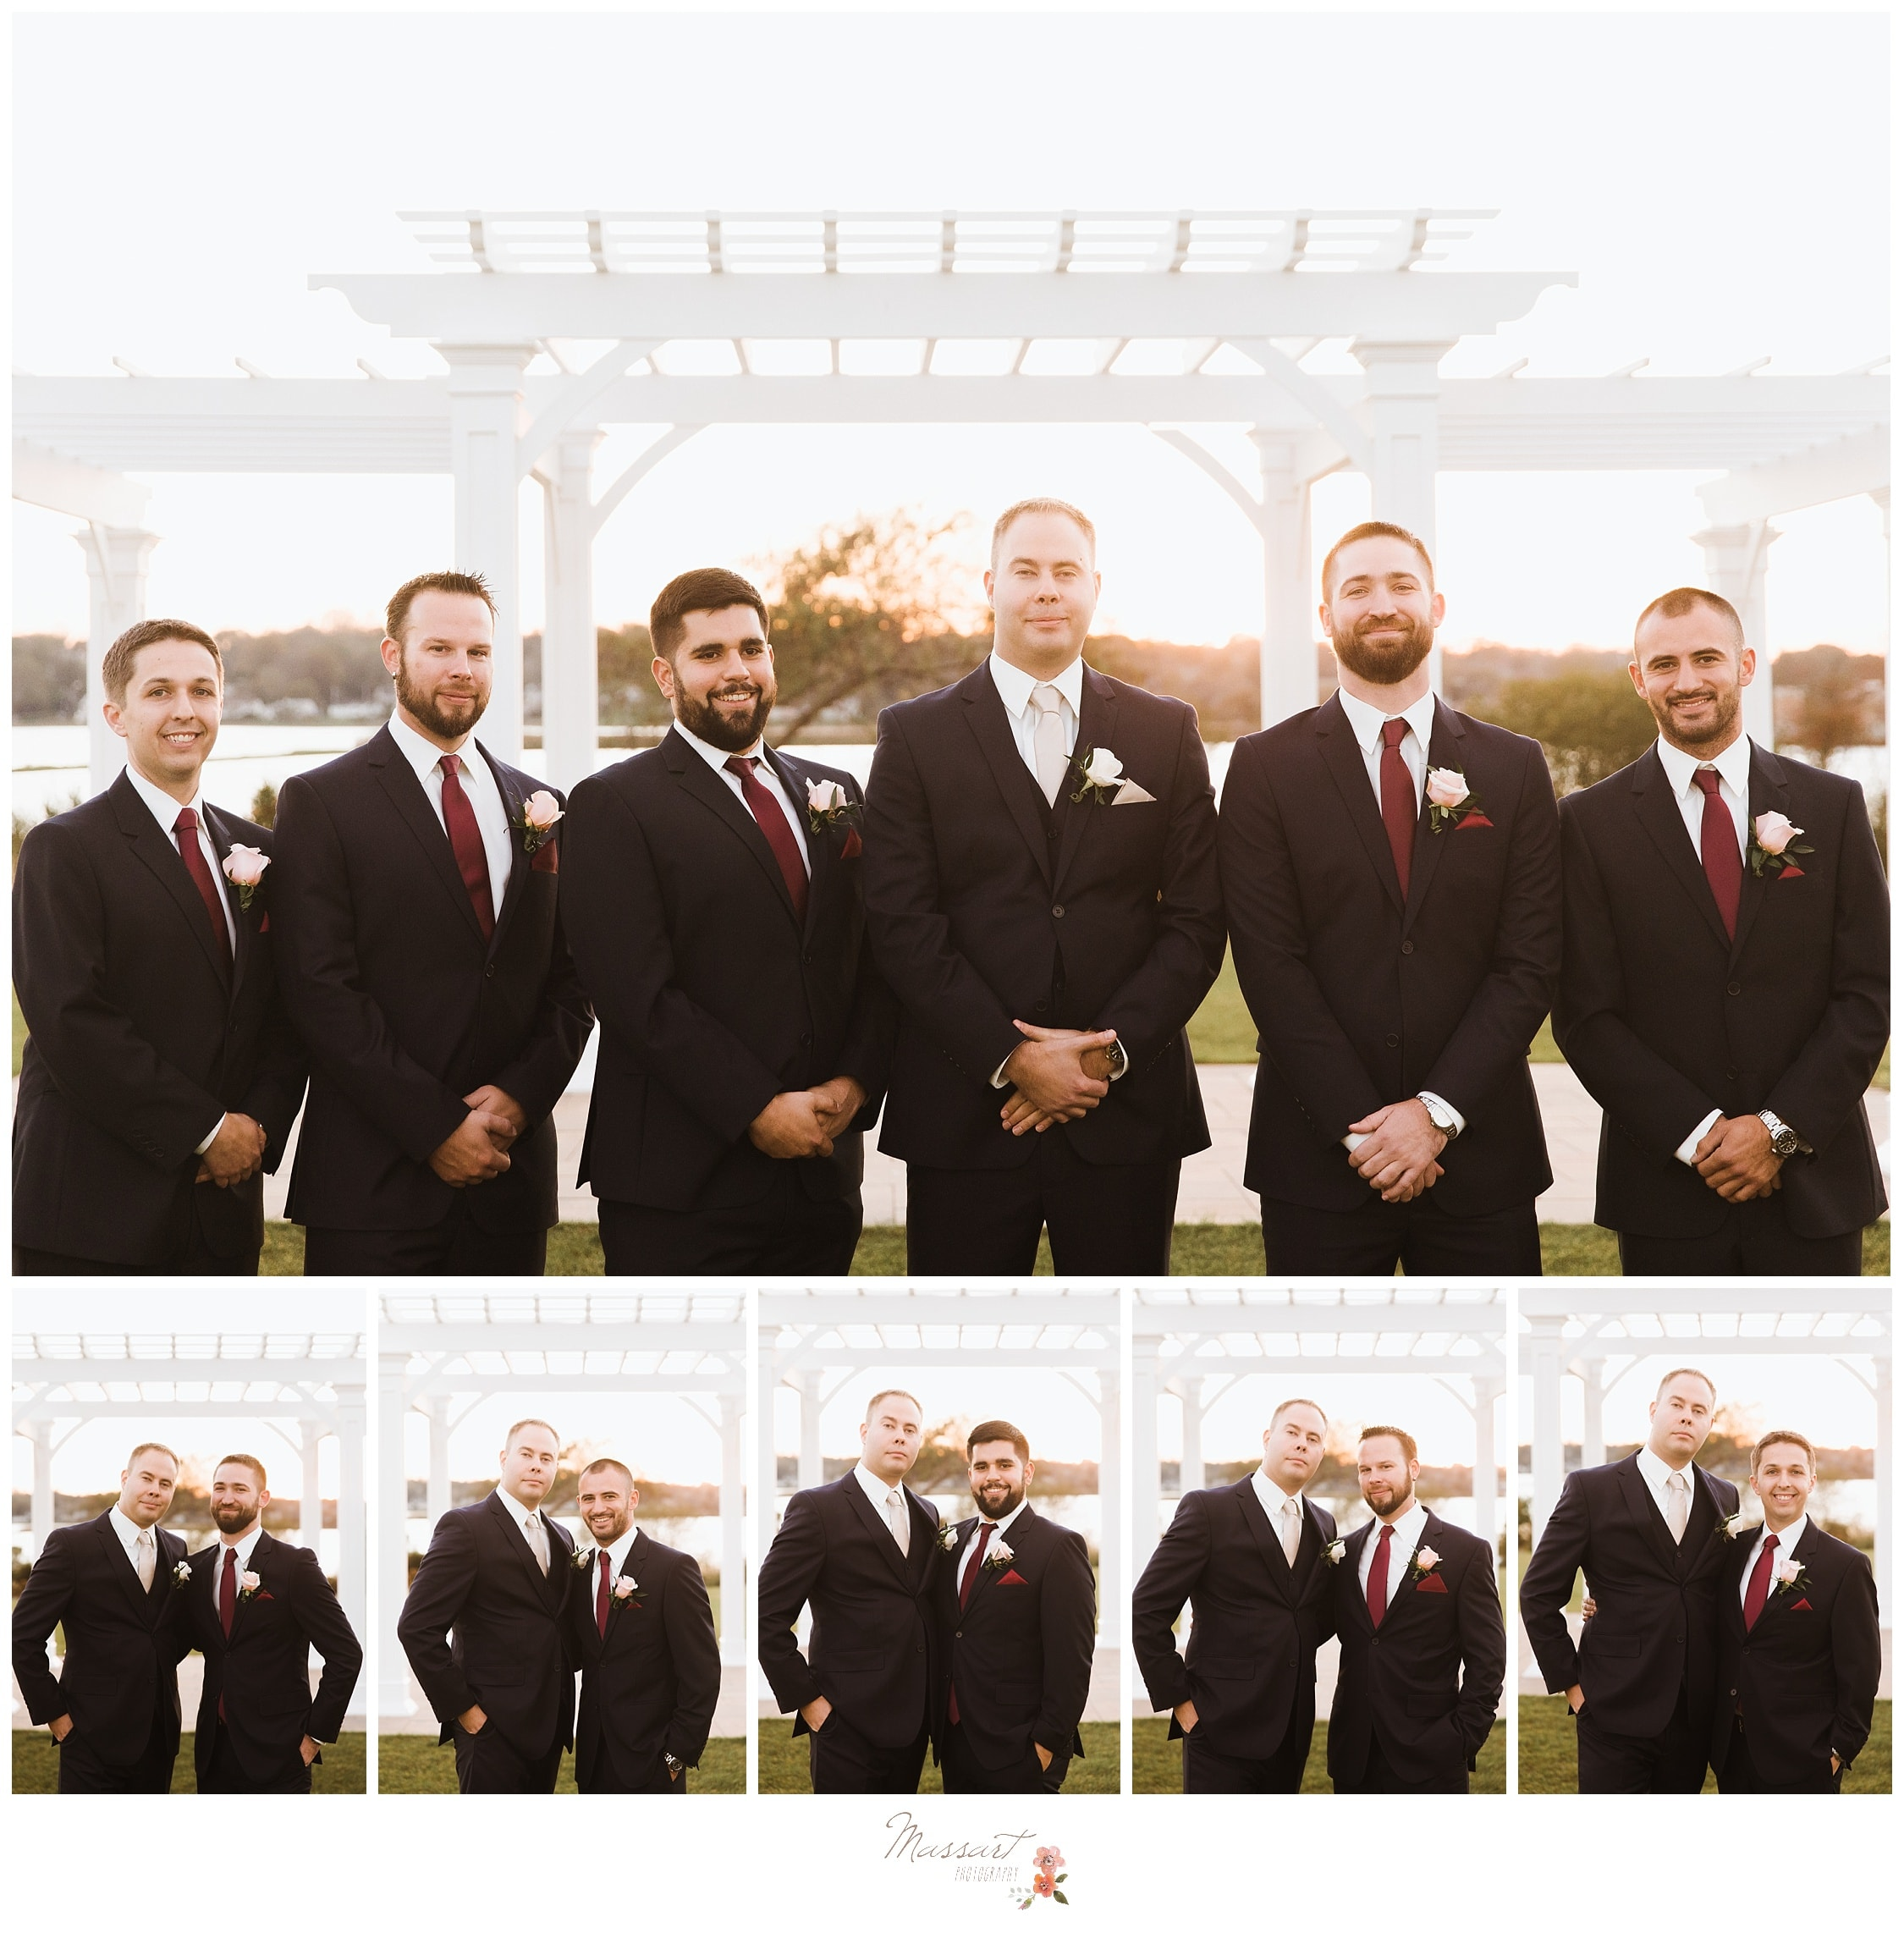 Groom and groomsmen take formal portraits before the wedding ceremony photographed by Massart Photography RI